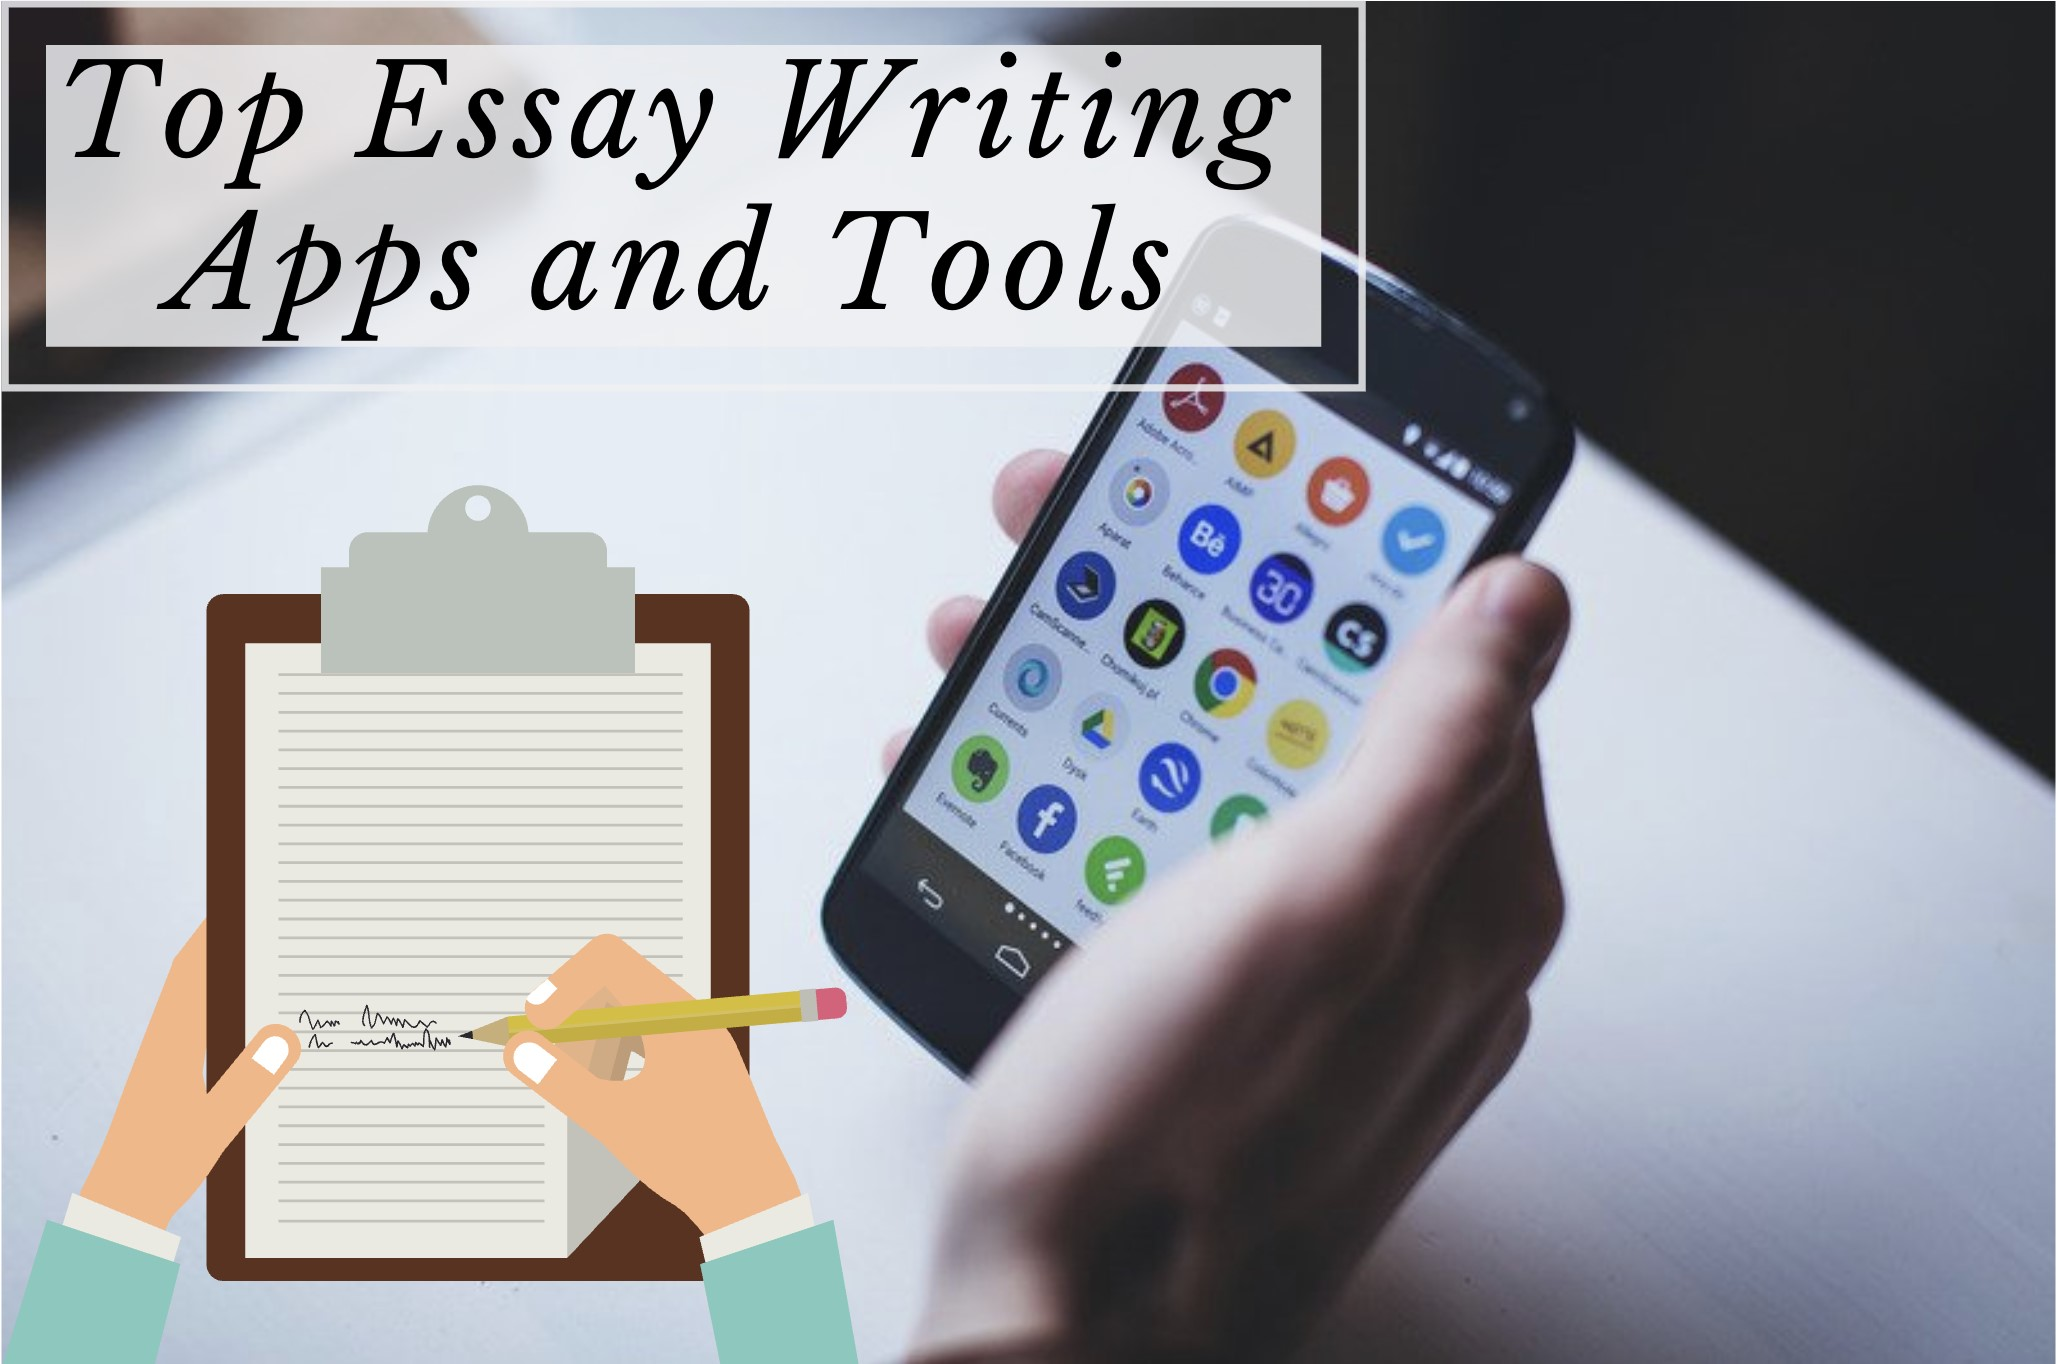 Top Essay Writing Apps and Tools - appPicker